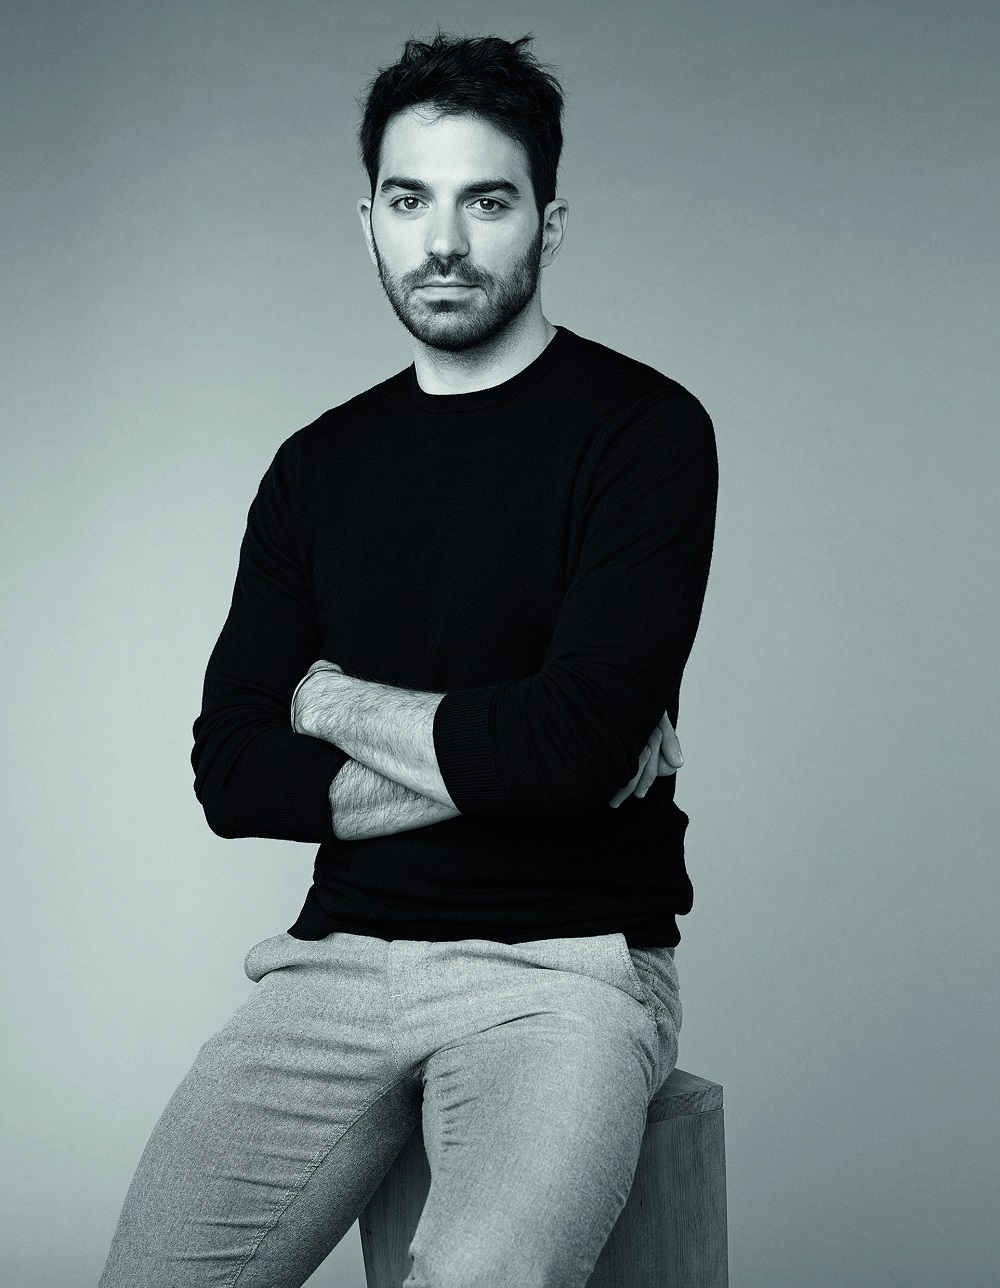 Carlo Massoud has been named as one of the 'Rising Talents' designers at Maison & Objet. — AFP pic